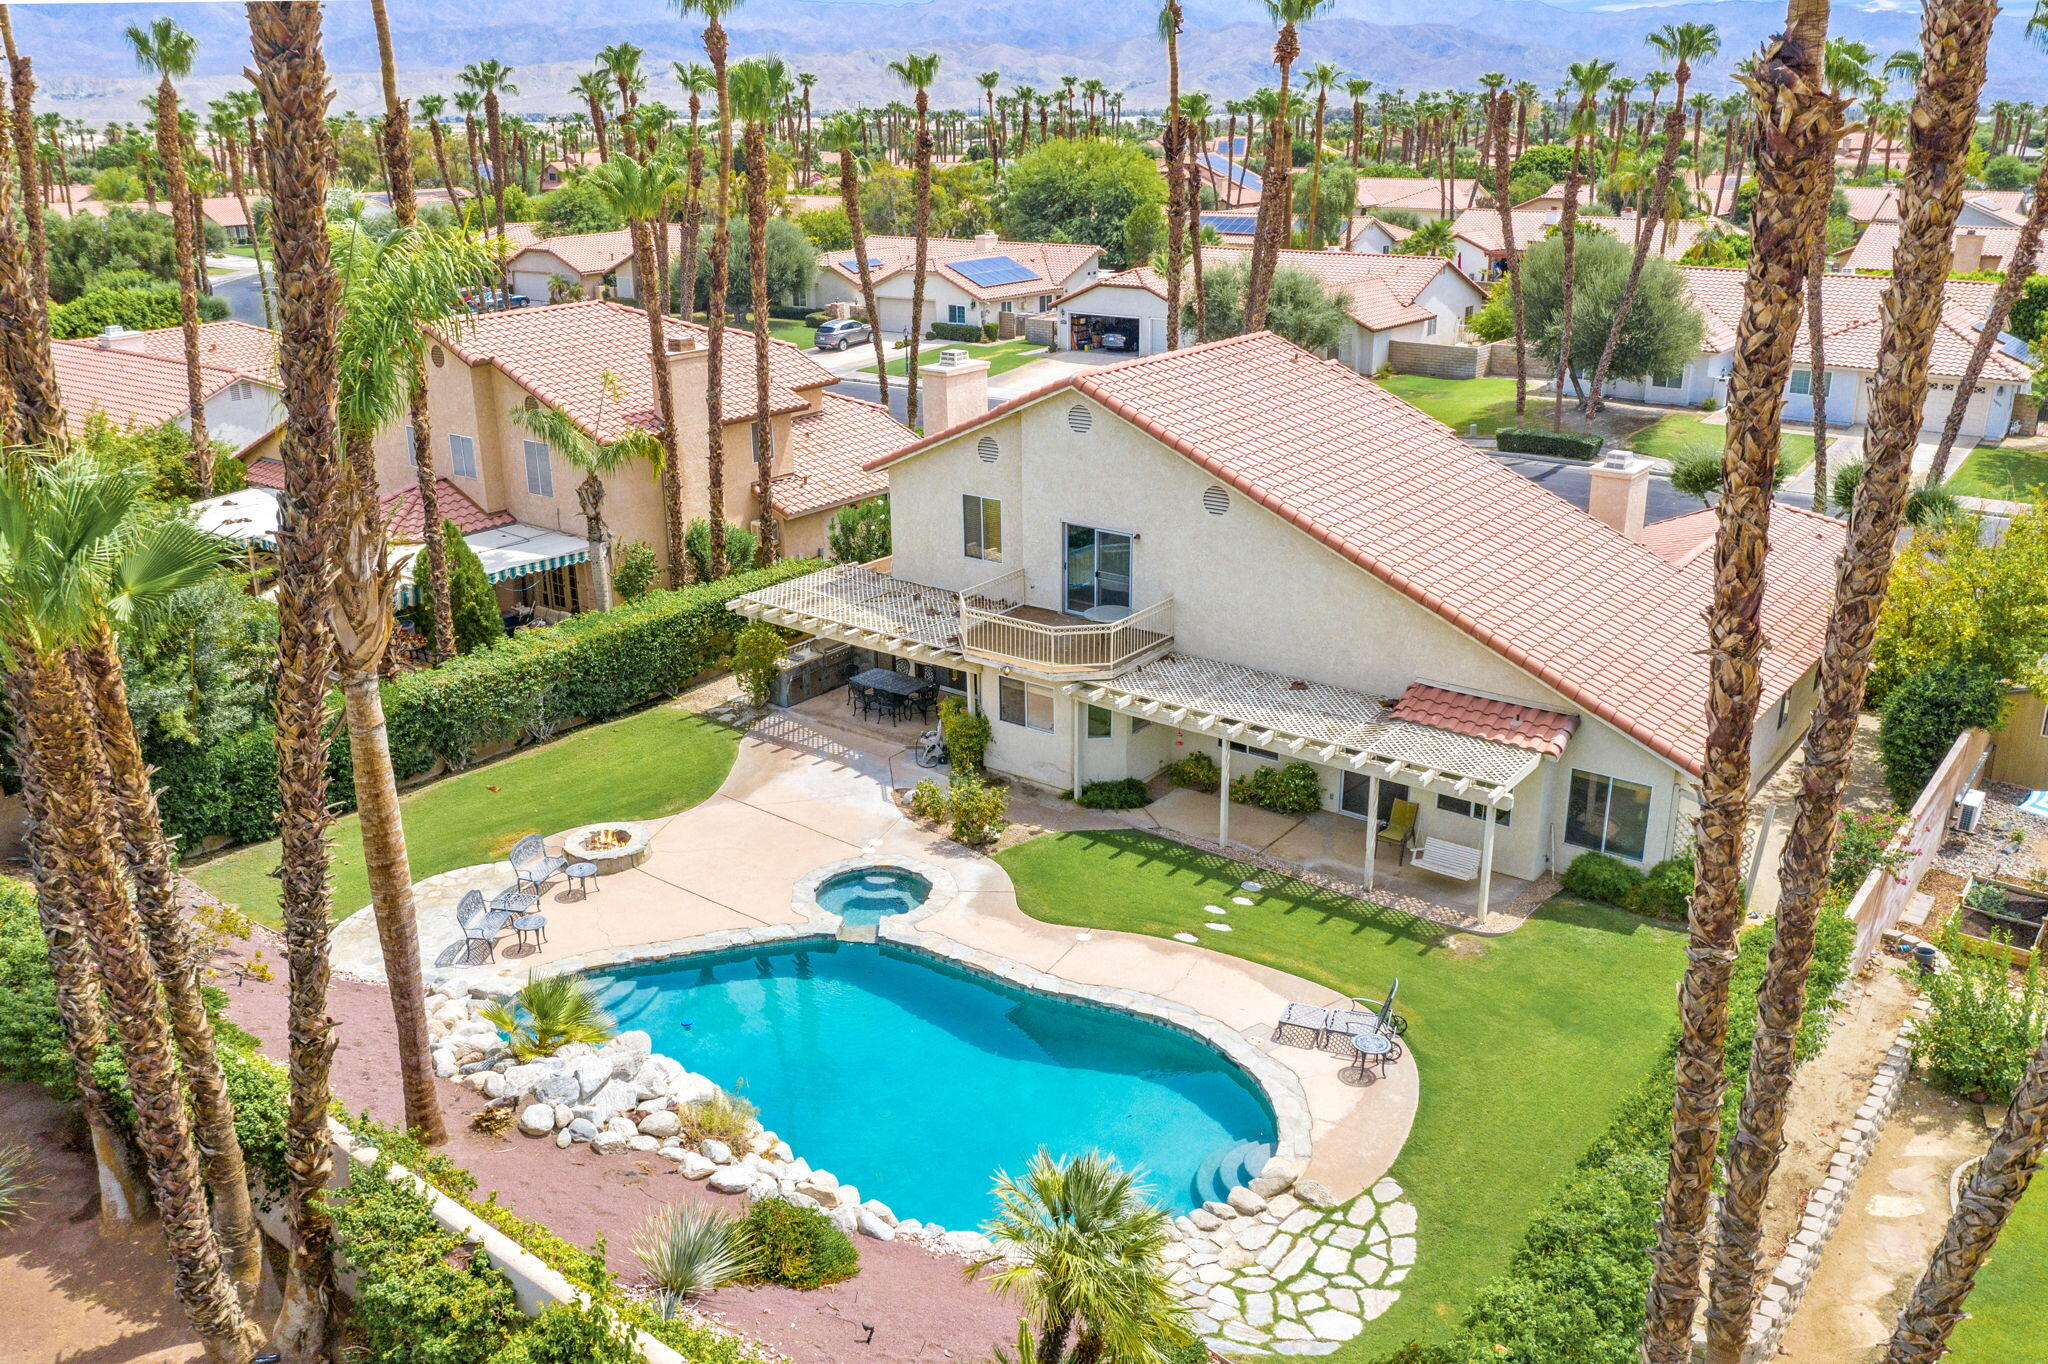 Welcome to this fabulous home in Palm Desert located behind the gates of desirable Regency Palms.  This beauty features 4 bedrooms & 3 1/2 baths inside the home with an attached 5th bedroom casita.  Enter into the double door entry where you are greeted by a massively entertaining living space with formal dining area, large living room & step down wet bar with picturesque views of the amazing backyard.  Spacious master suite features double doors, cozy fireplace, walk in closet, dual vanities, soaking tub & is separate from all other rooms for complete privacy.  Gourmet kitchen has upgraded cabinetry, stainless steel appliances, granite counters & is assisted with the cutest built in nook perfect for morning breakfast.  Great room off of the kitchen is warm & inviting with gorgeous wood built ins that compliment the rich tones throughout the home.  Upstairs you will find 3 bedrooms & 2 baths with GORGEOUS views of the pool, golf course & mountains.  This entertainers dream yard is extensive with every detail from the outside shower to the built in BBQ to the fire pit over looking the amazing pool, spa & rock waterfall.  This beauty shows pride of ownership from the minute you pull up to this 2800 sq ft space with almost 13,000 sq ft lot.  Come fall in love with this one-of-a kind lot that is in the ideal location close to parks, schools, shopping & entertainment.  You won't be disappointed!